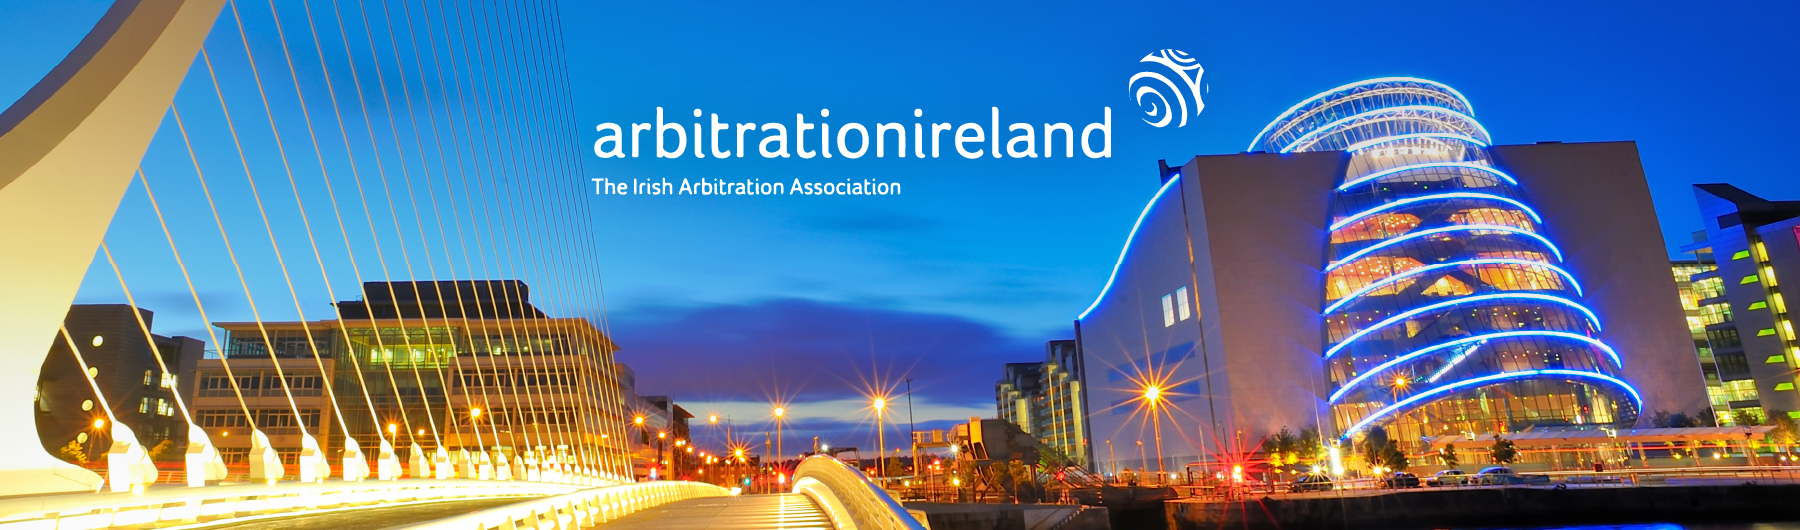 A discussion on climate/environmental matters and the role of arbitration